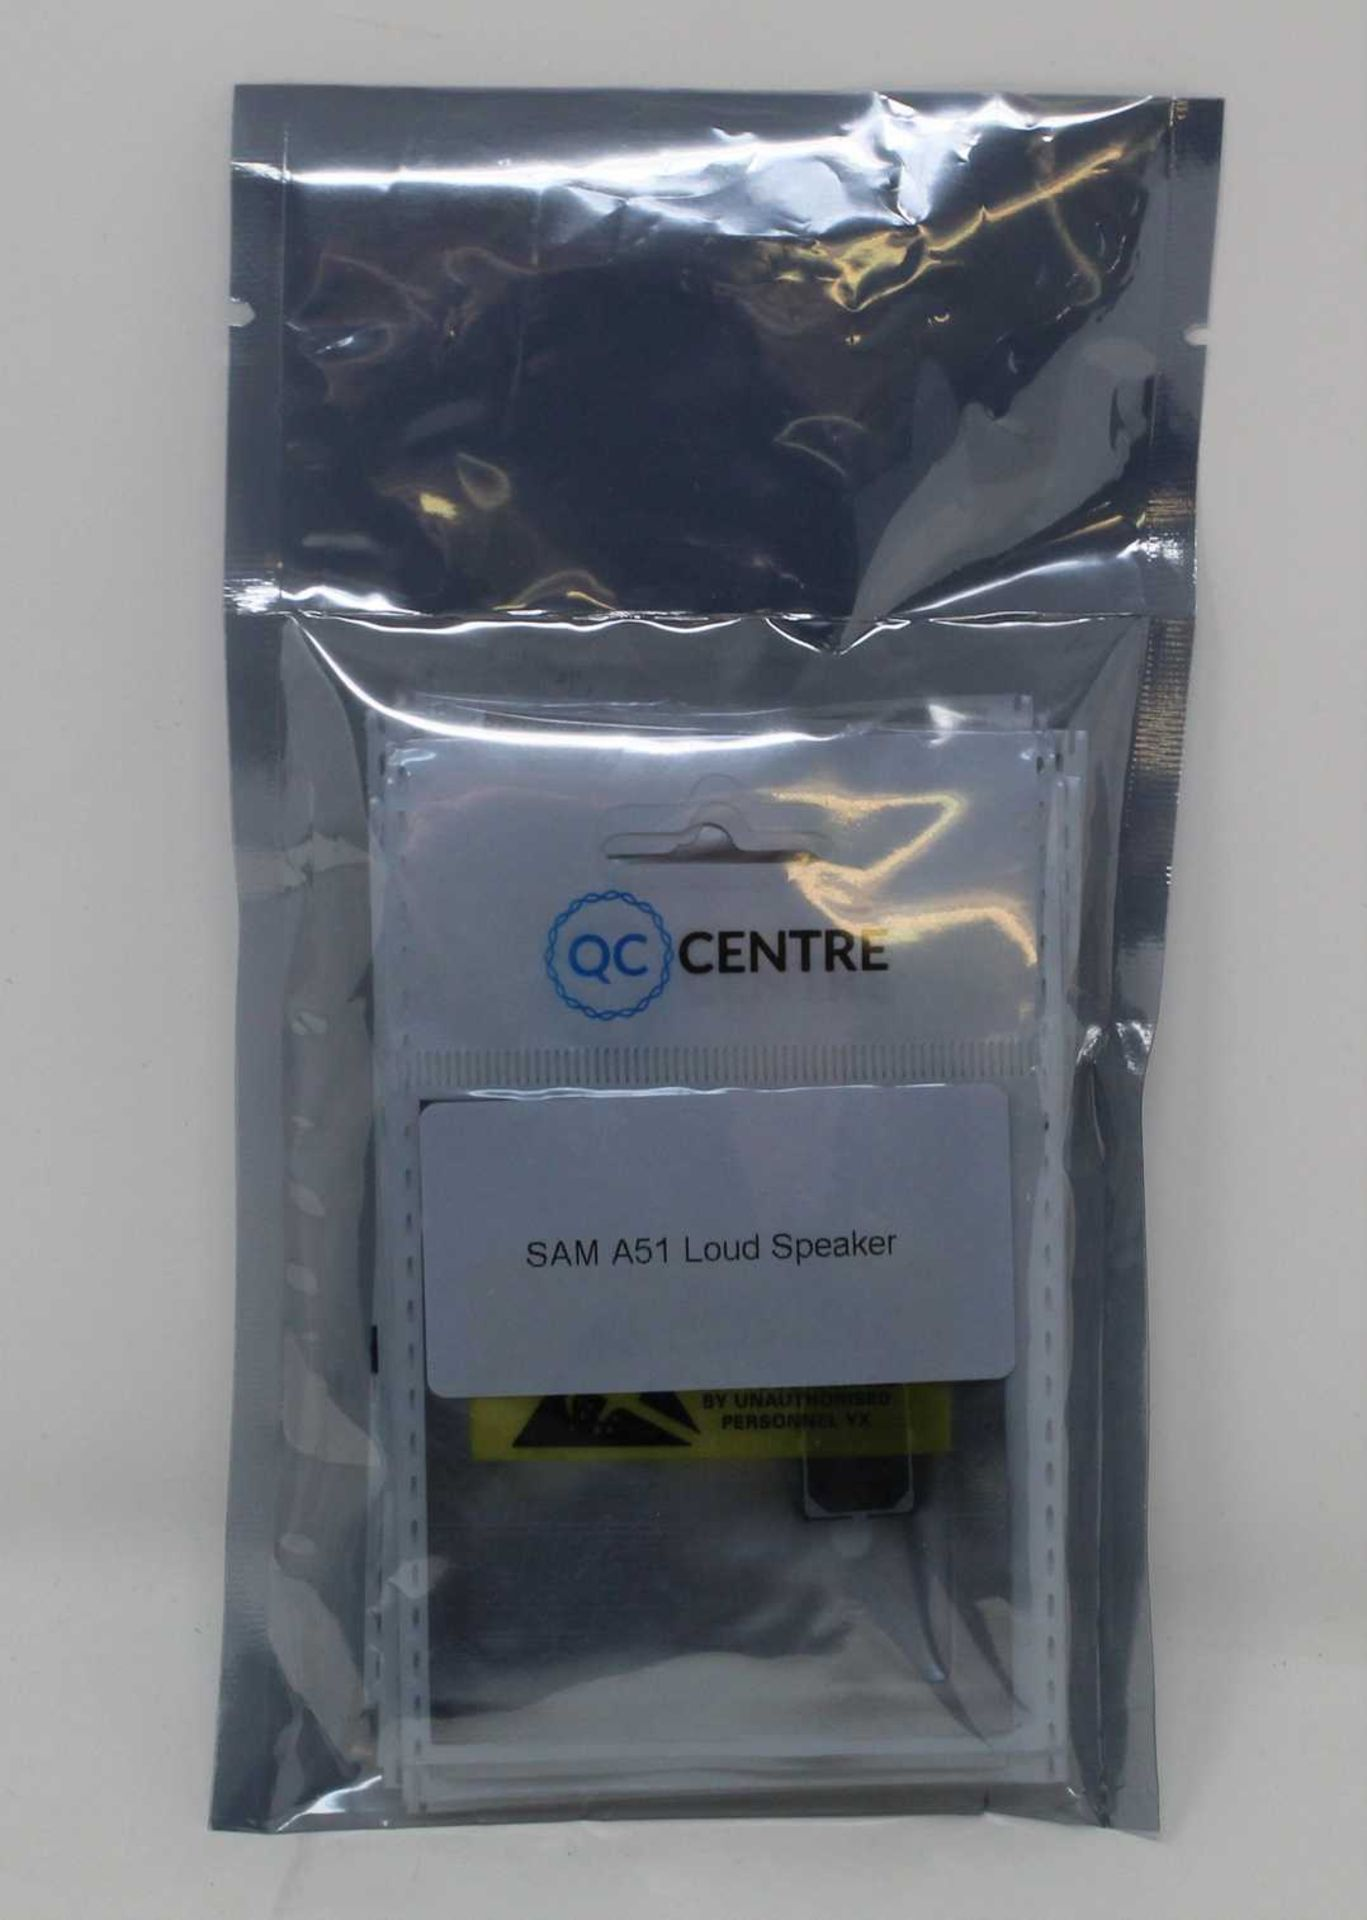 Ten as new QC Centre replacement front cameras for Samsung A51 and two packs of five QC Centre